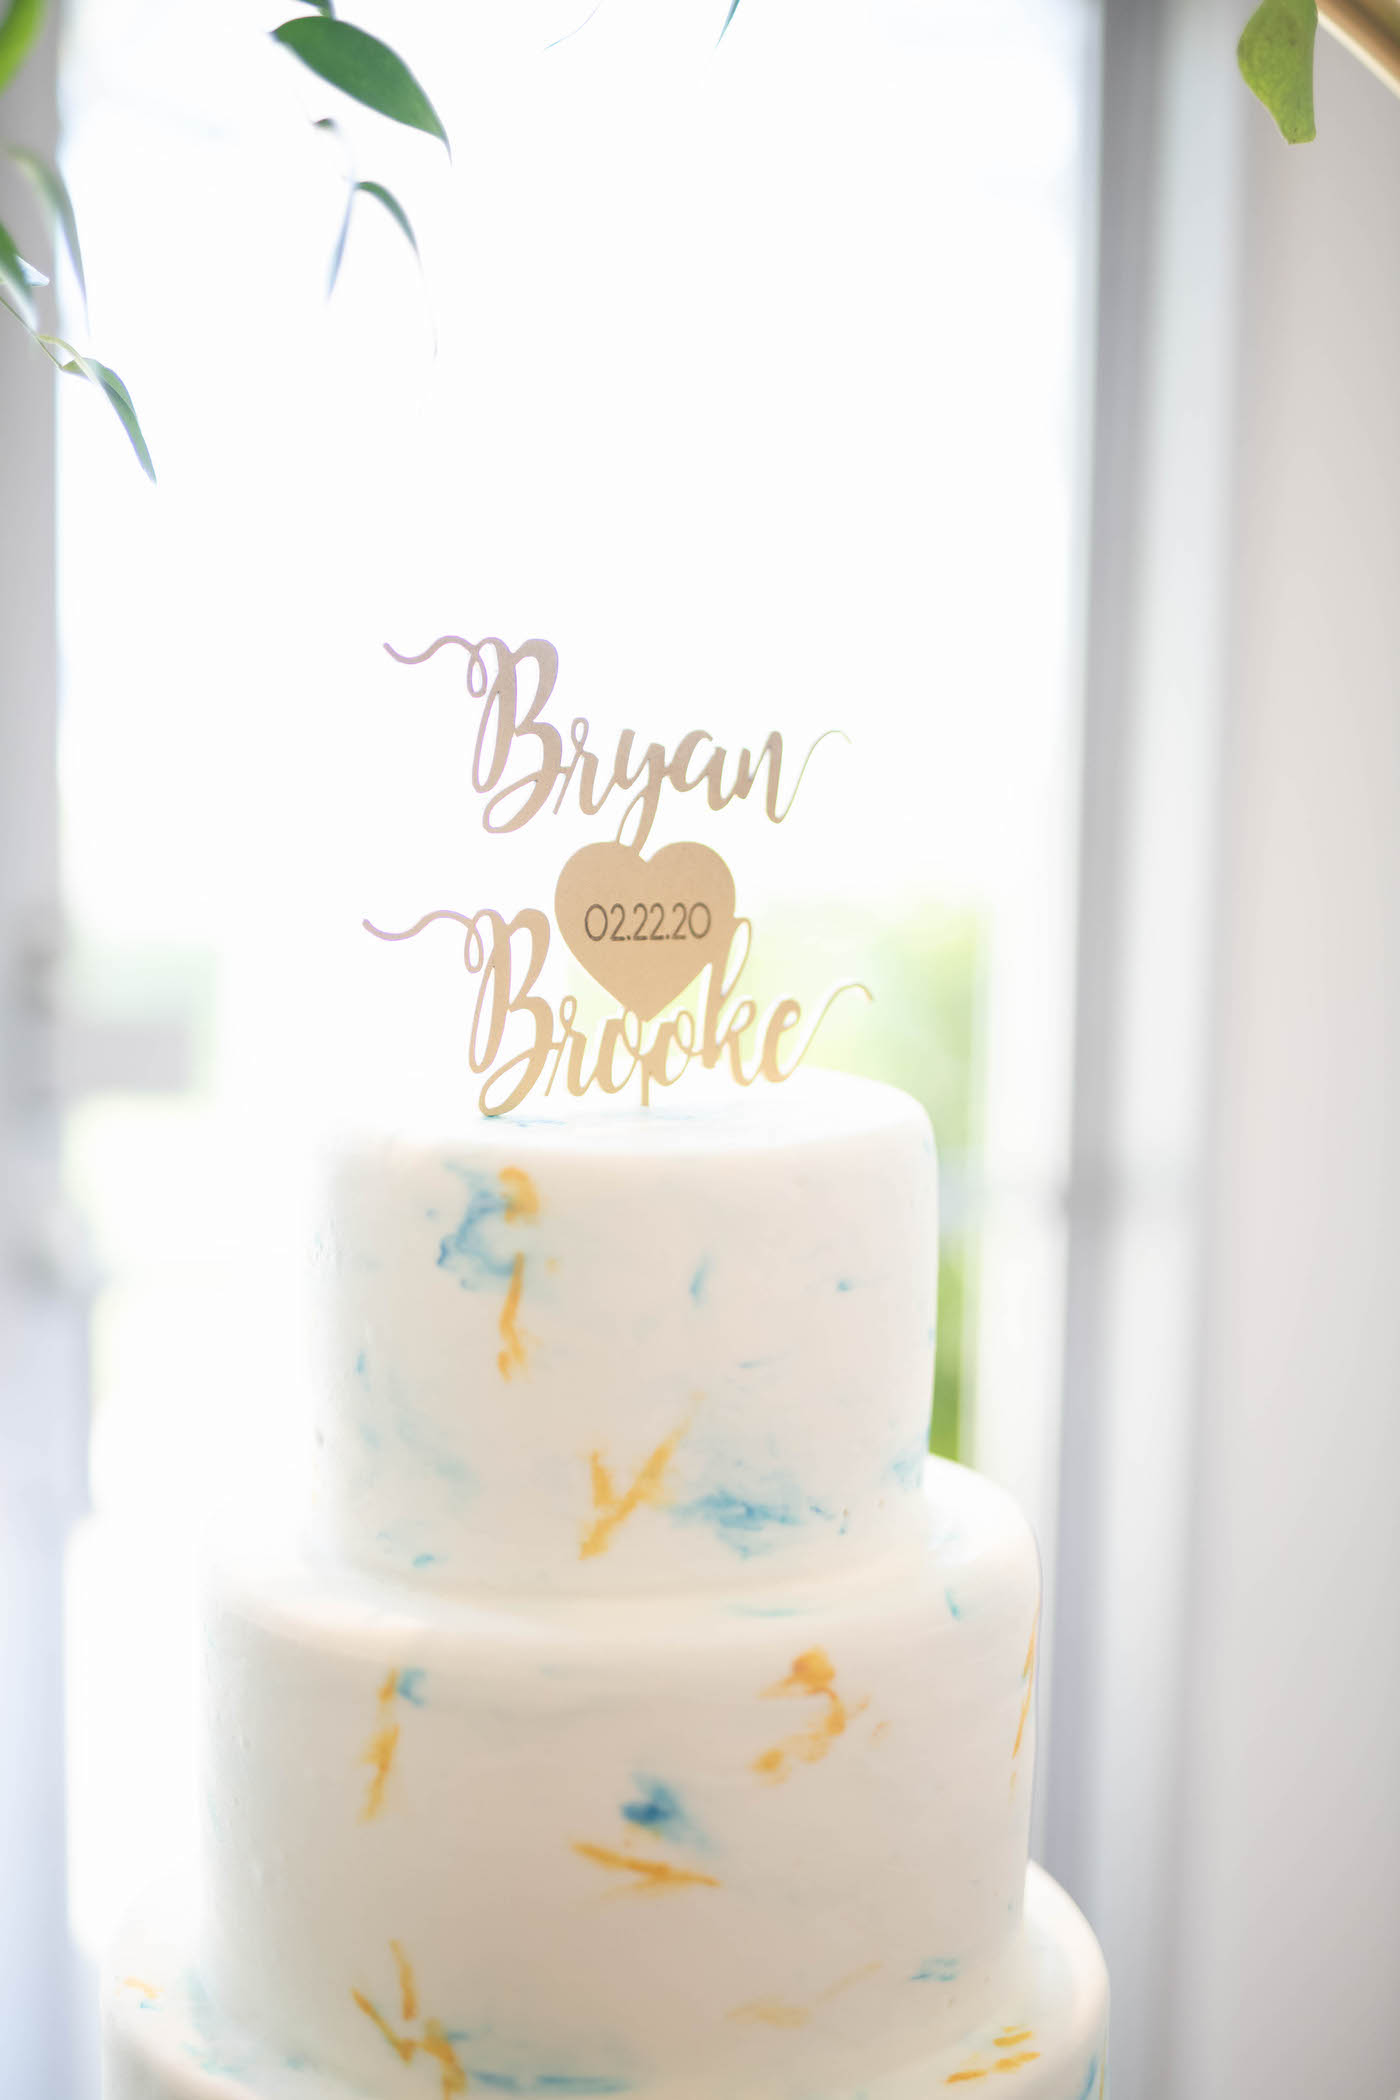 Wedding Cake with Marbled Fondant Icing and Gold Die Cut Cake Topper